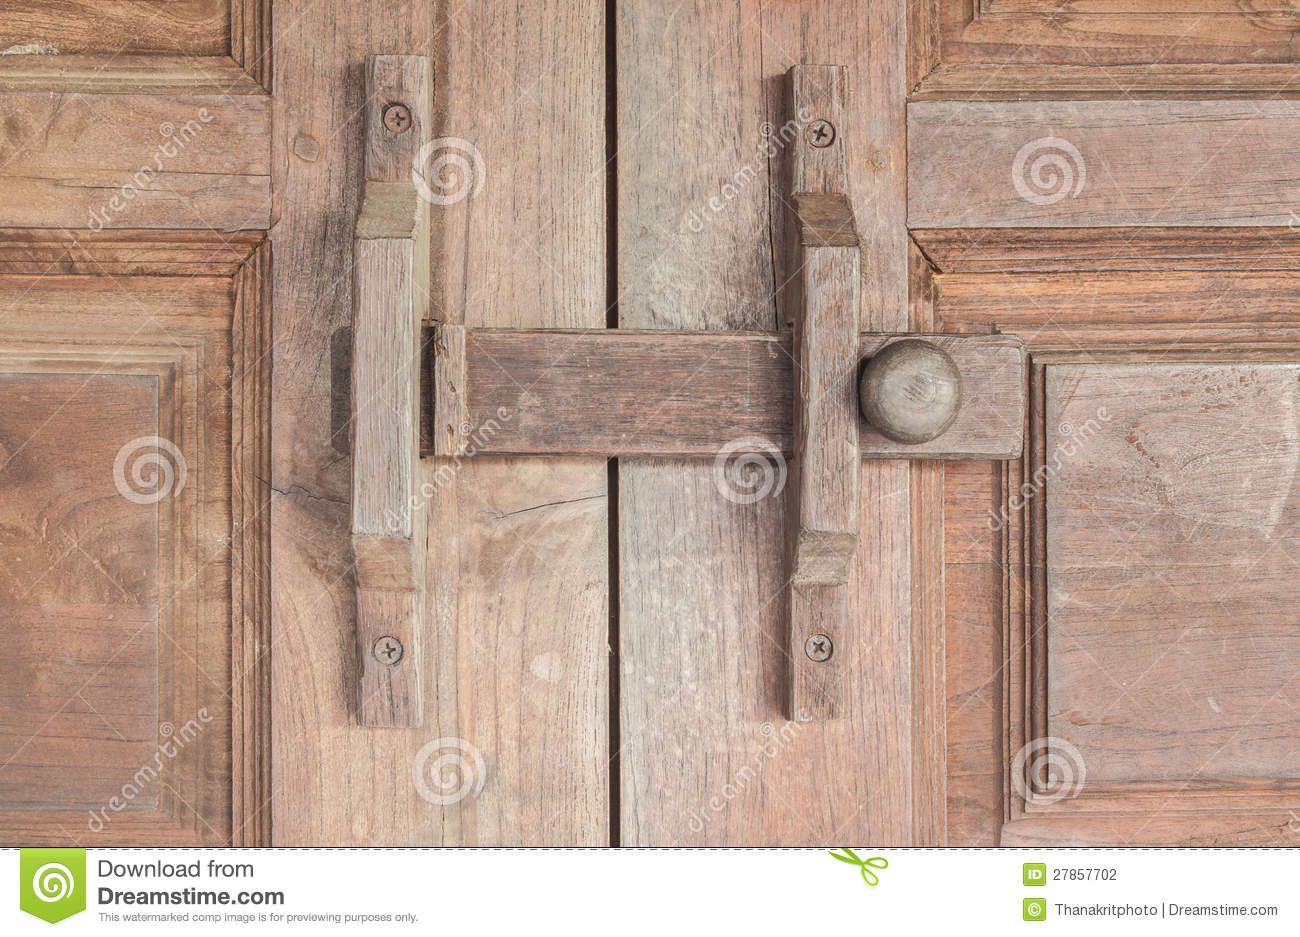 Wooden Latches And Locks Google 検索 Projects